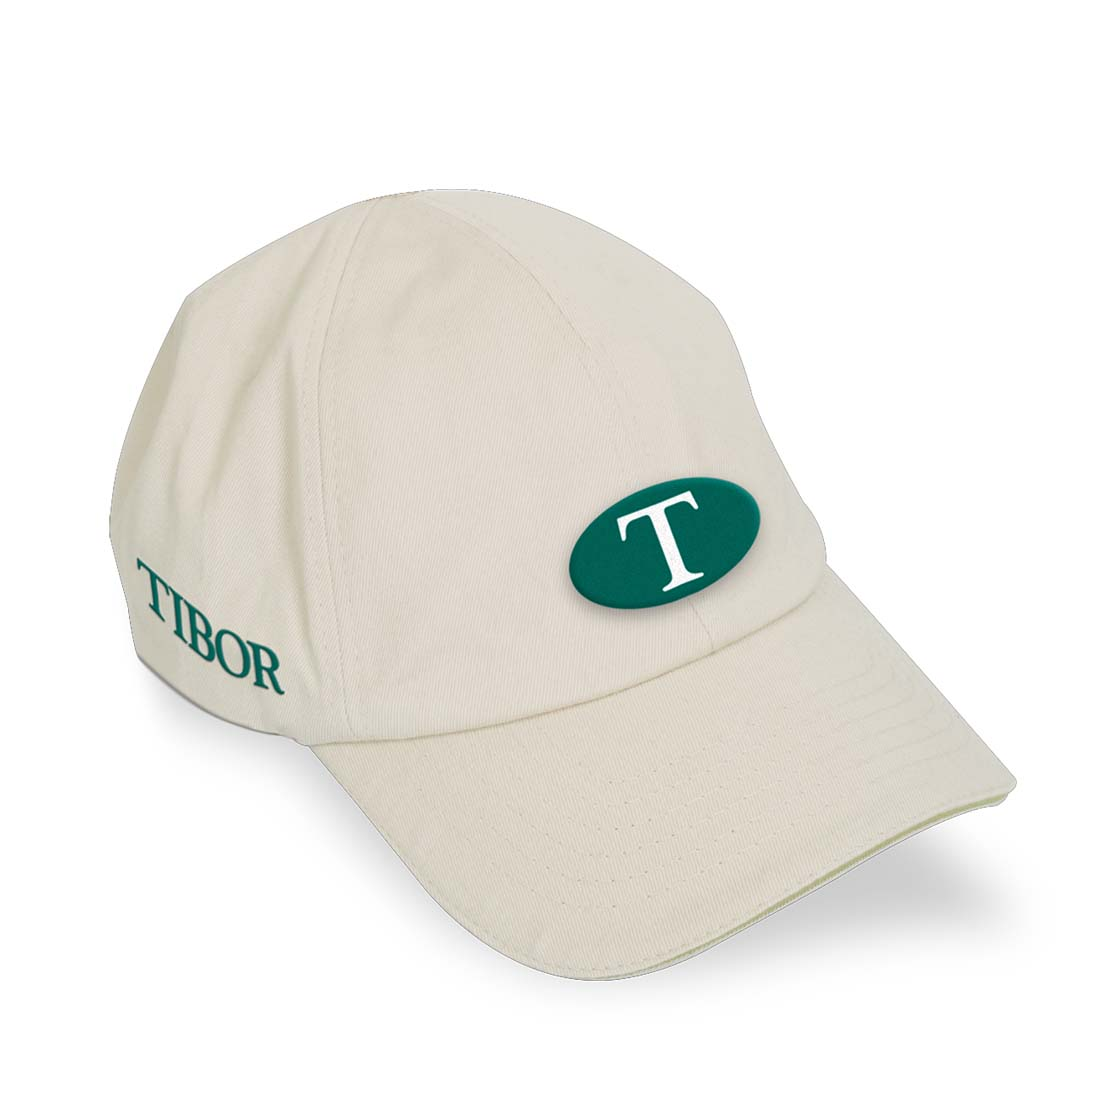 T-Logo Fishing Caps